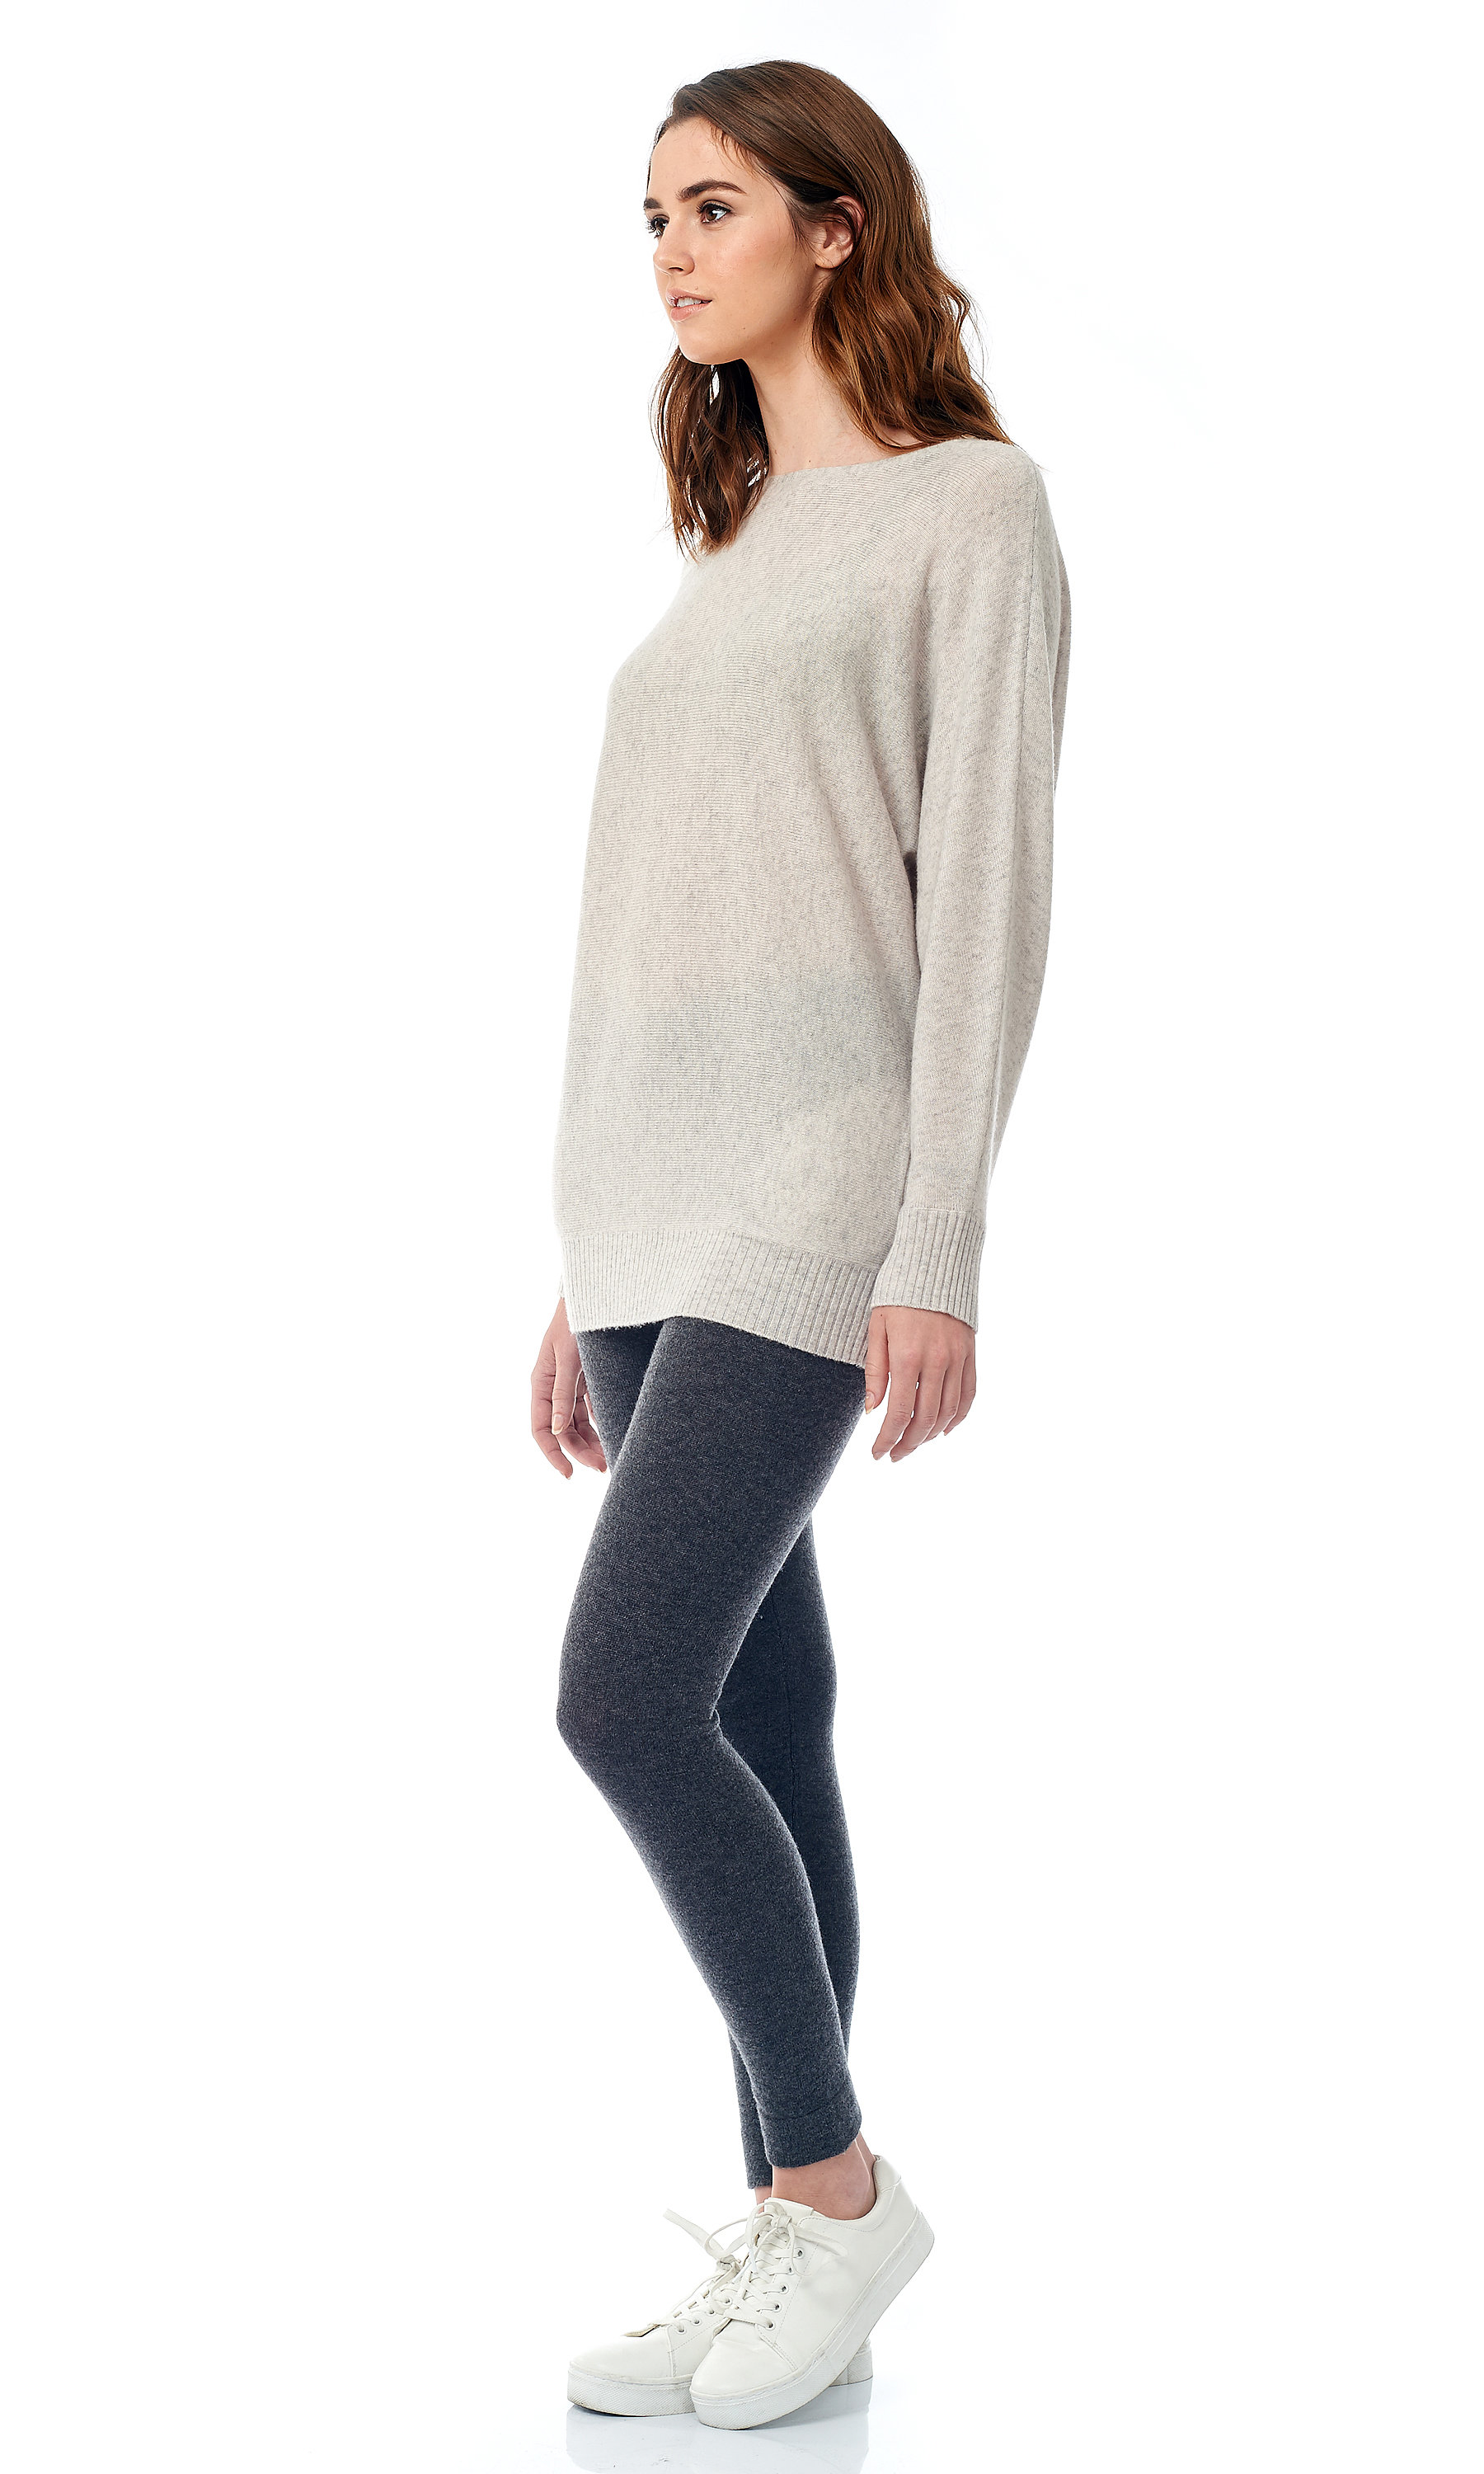 welt knit pullover side look